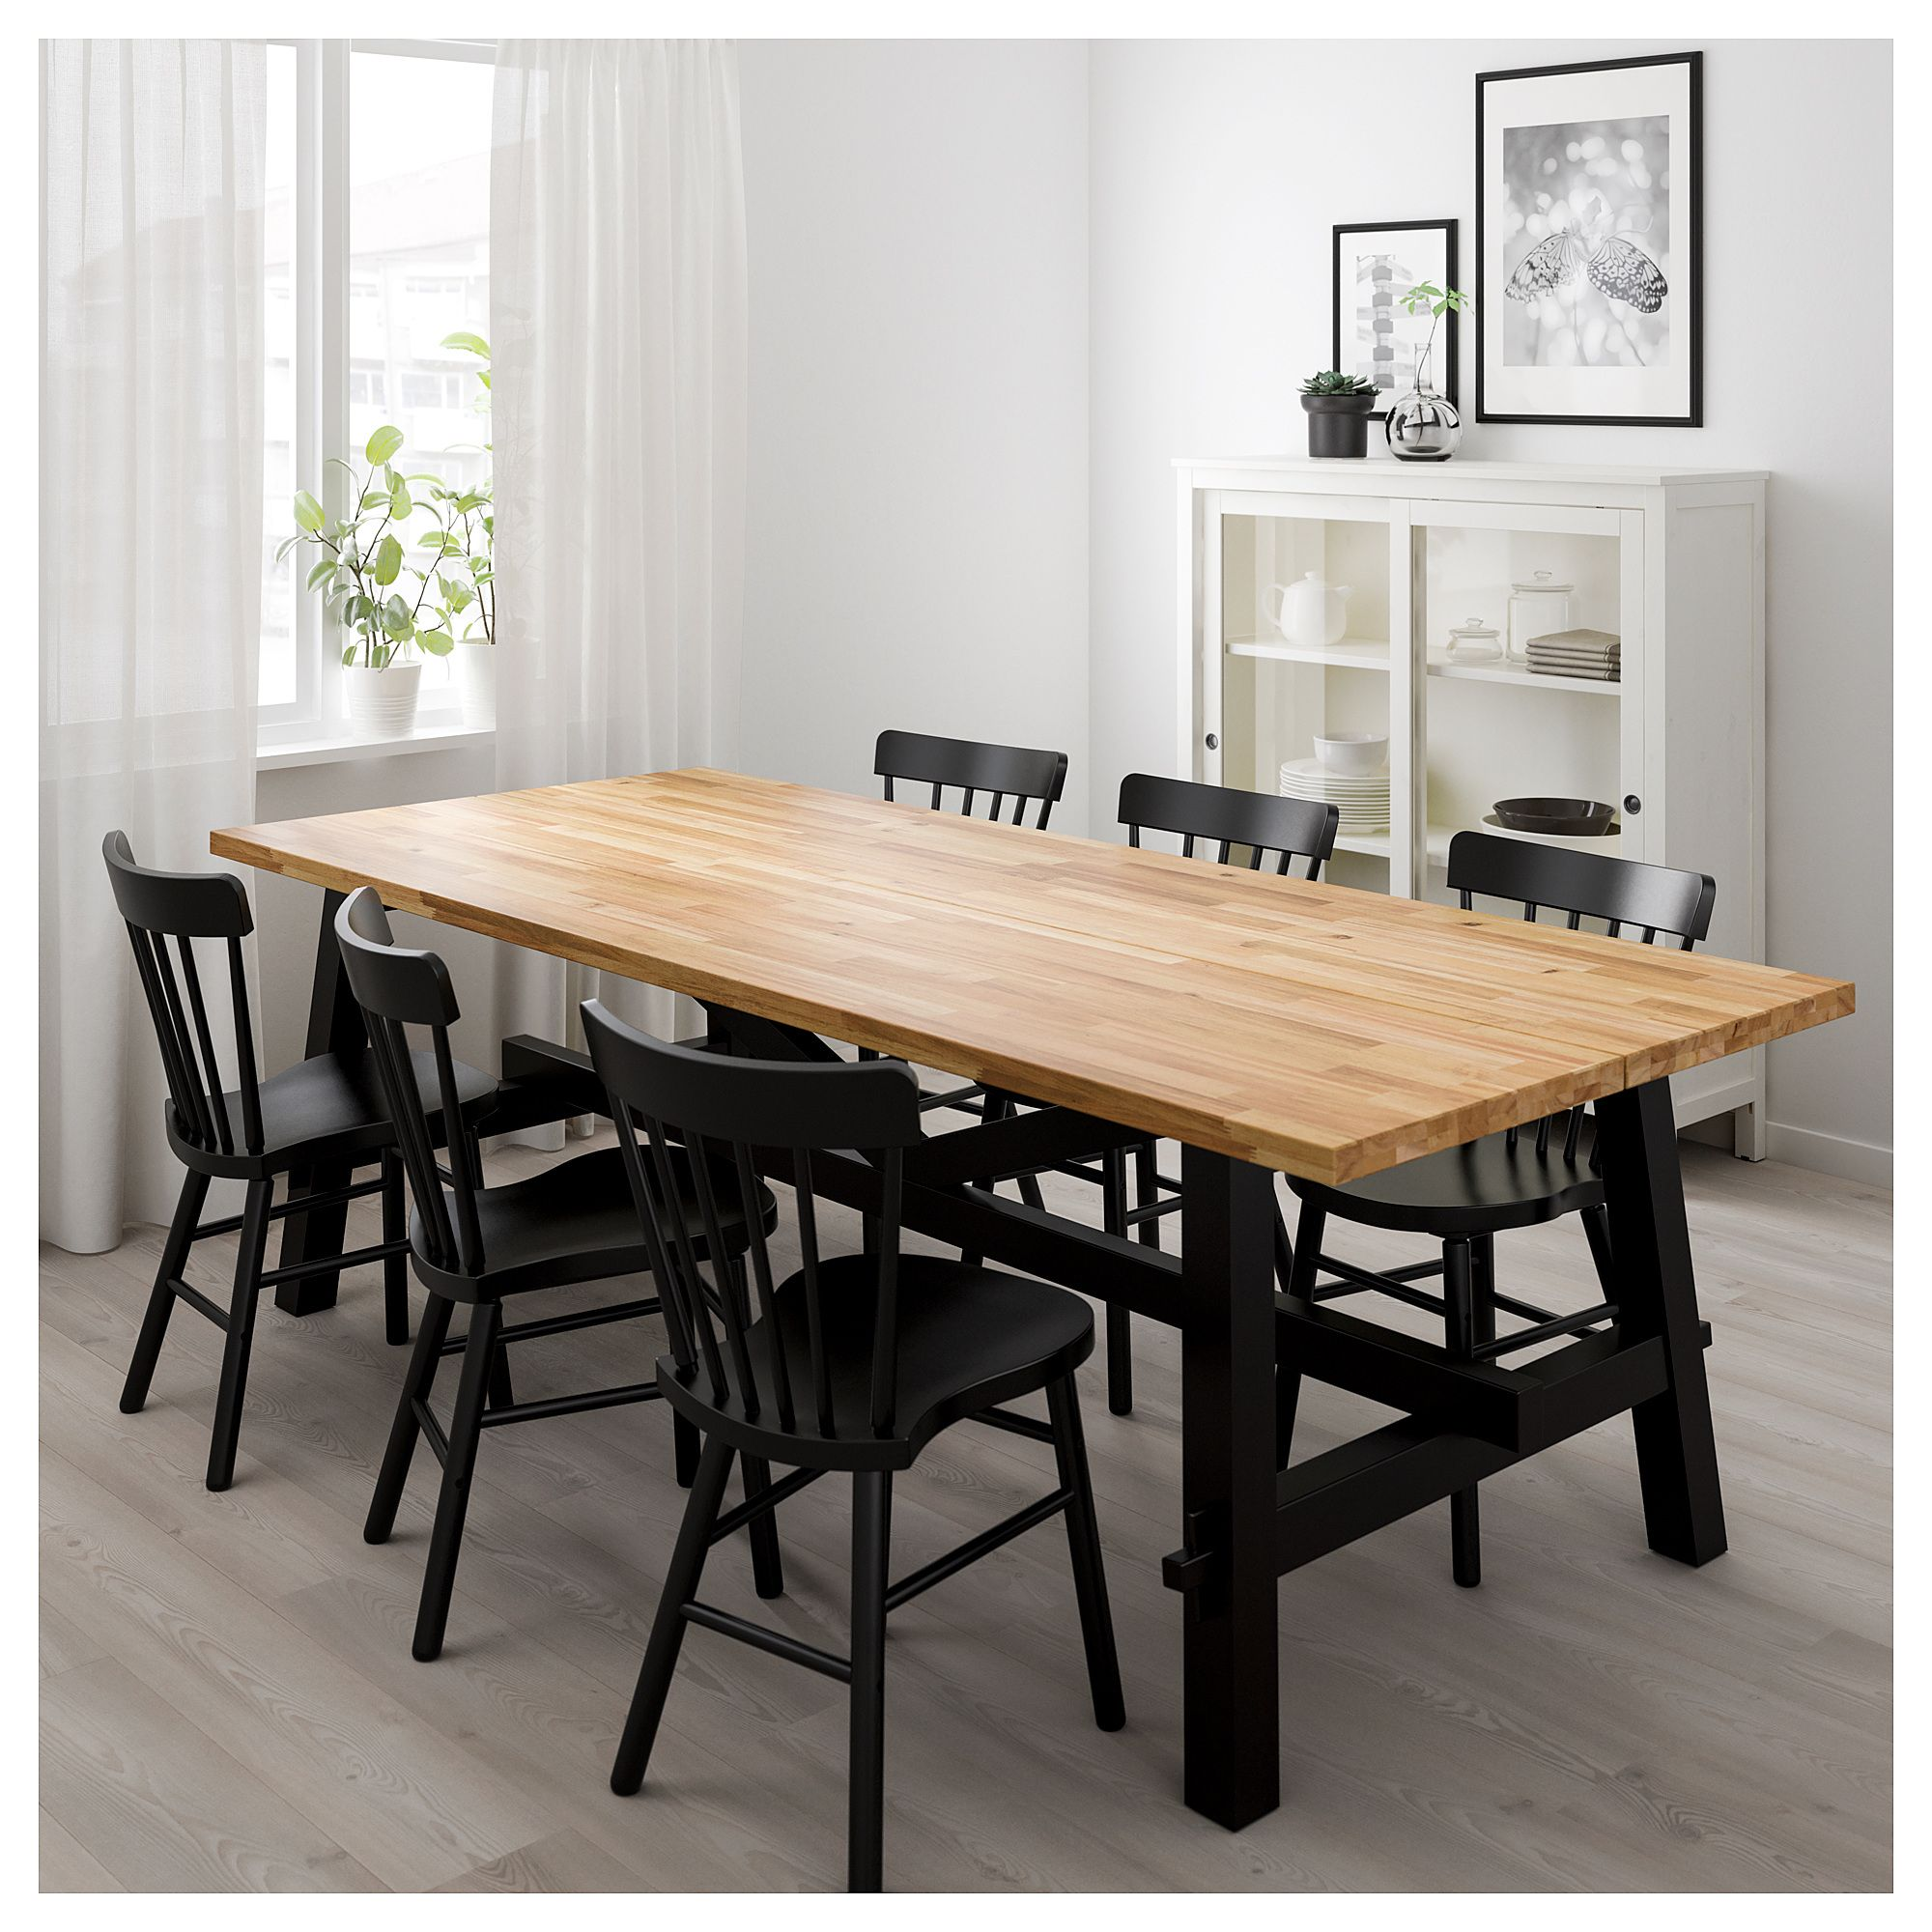 Ikea - Skogsta Dining Table Acacia Products In 2019